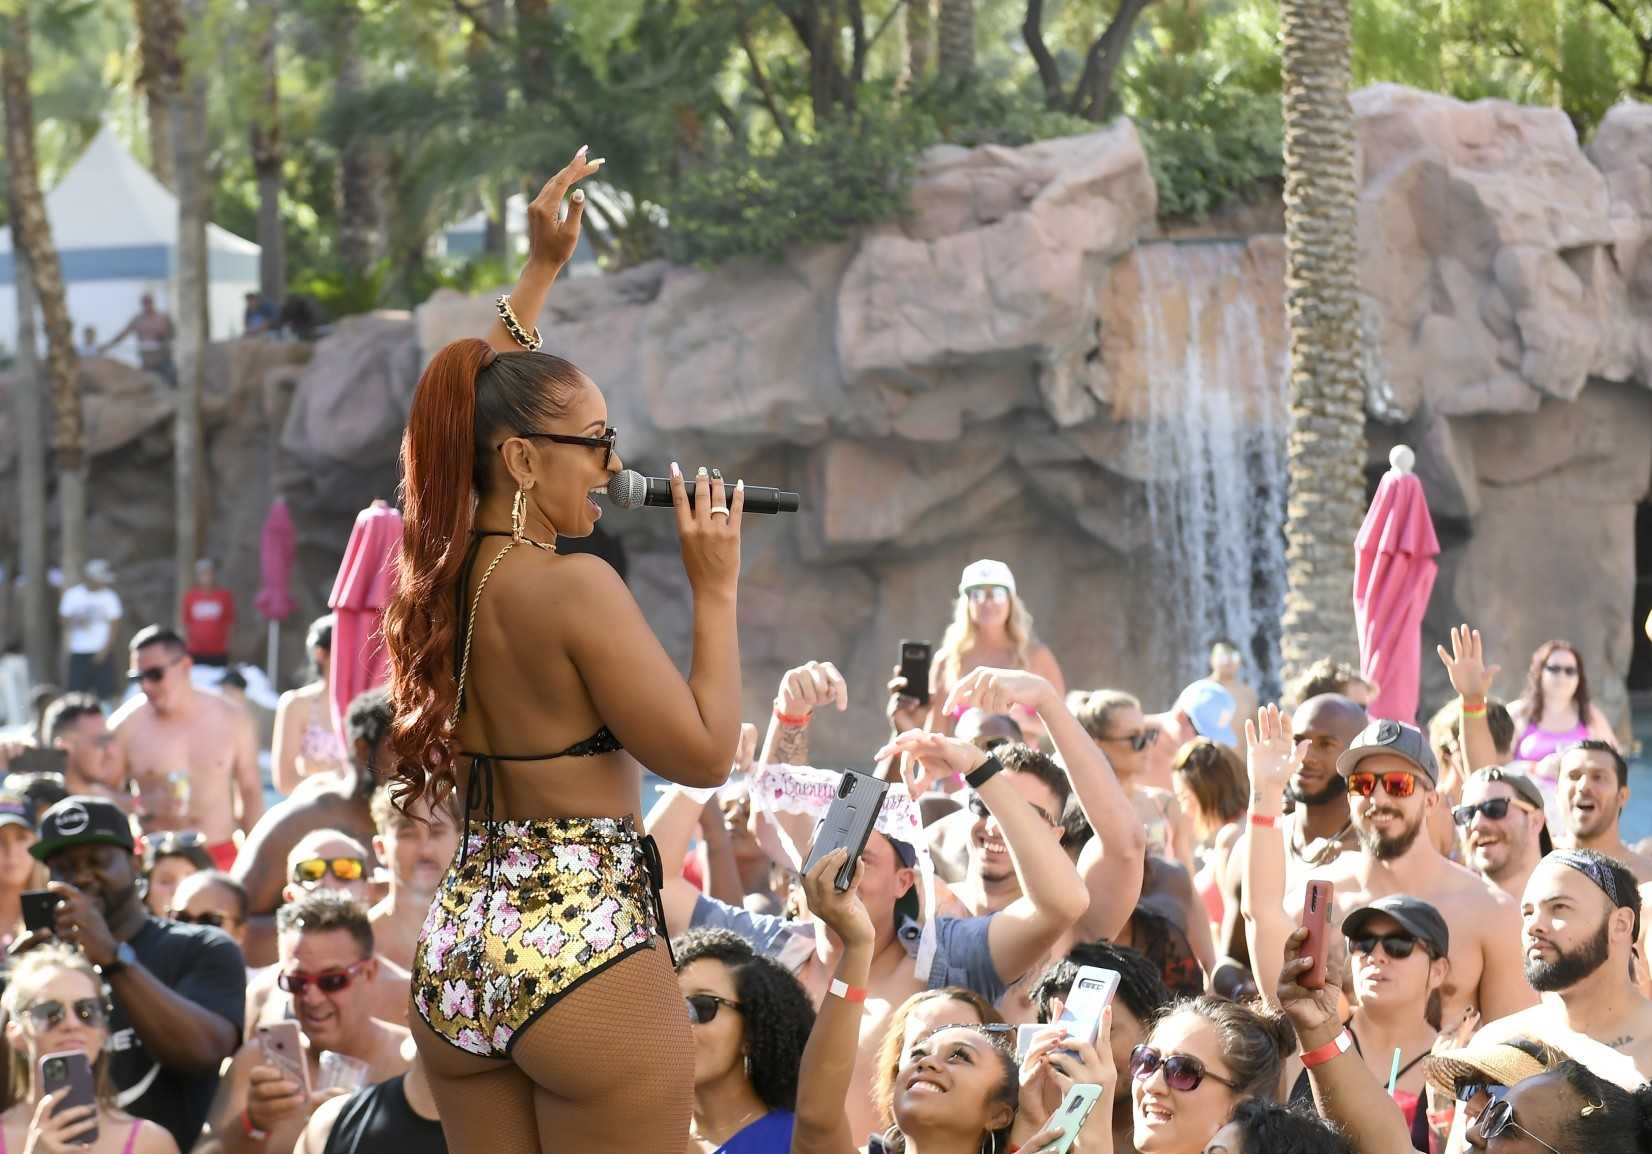 Event Recap: Mýa brings summer sizzle to performance at Flamingo Las Vegas' GO Pool Dayclub [Photos]